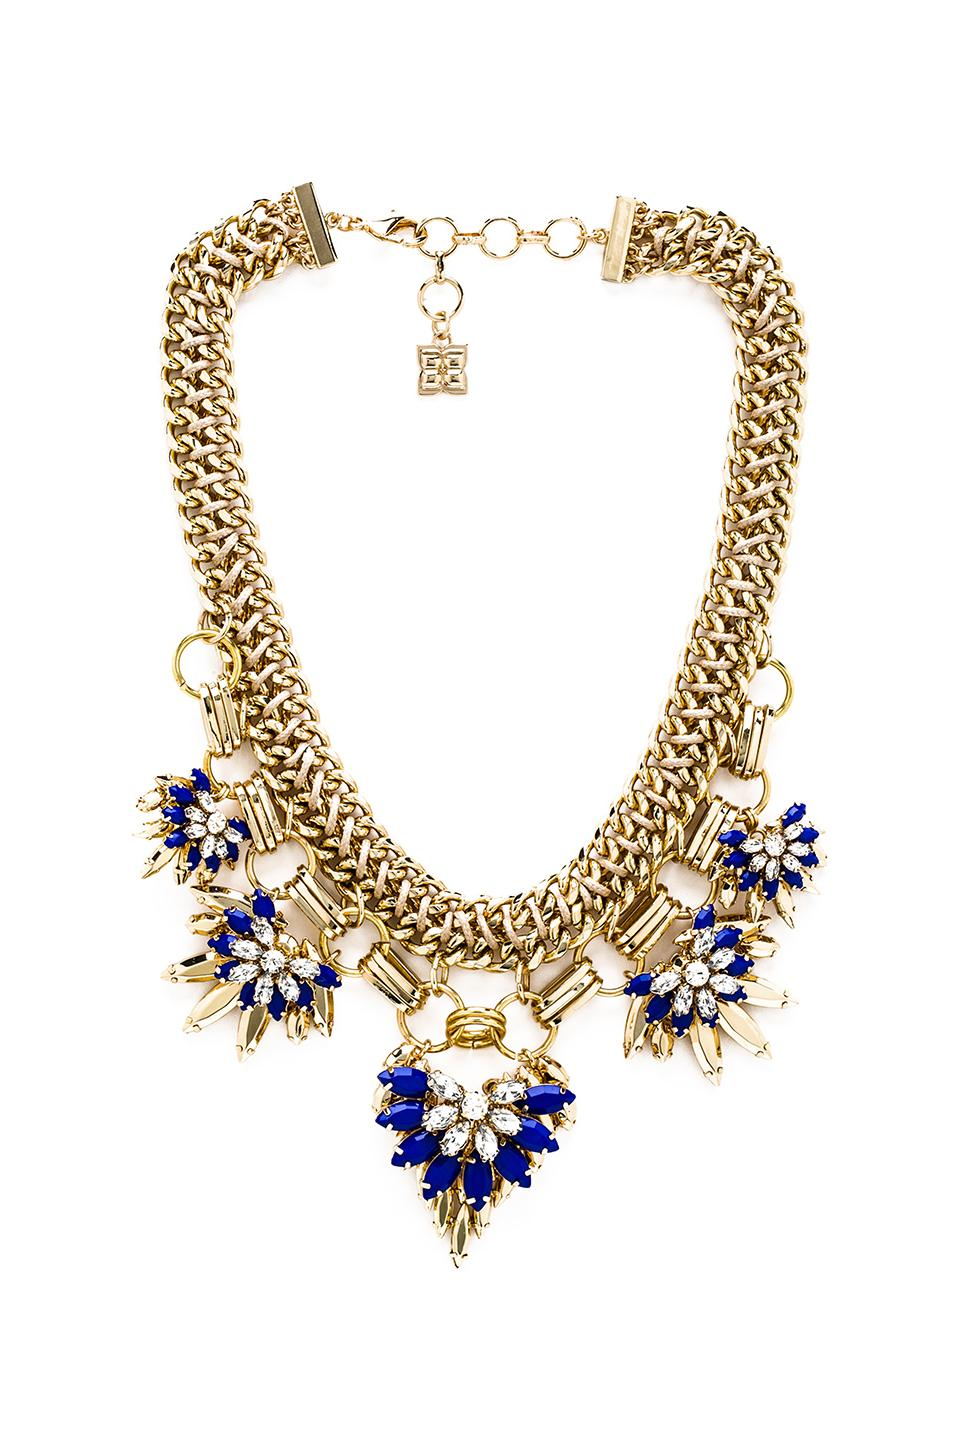 BCBGMAXAZRIA Floral Stone Chain Necklace in Larkspur Blue Combo